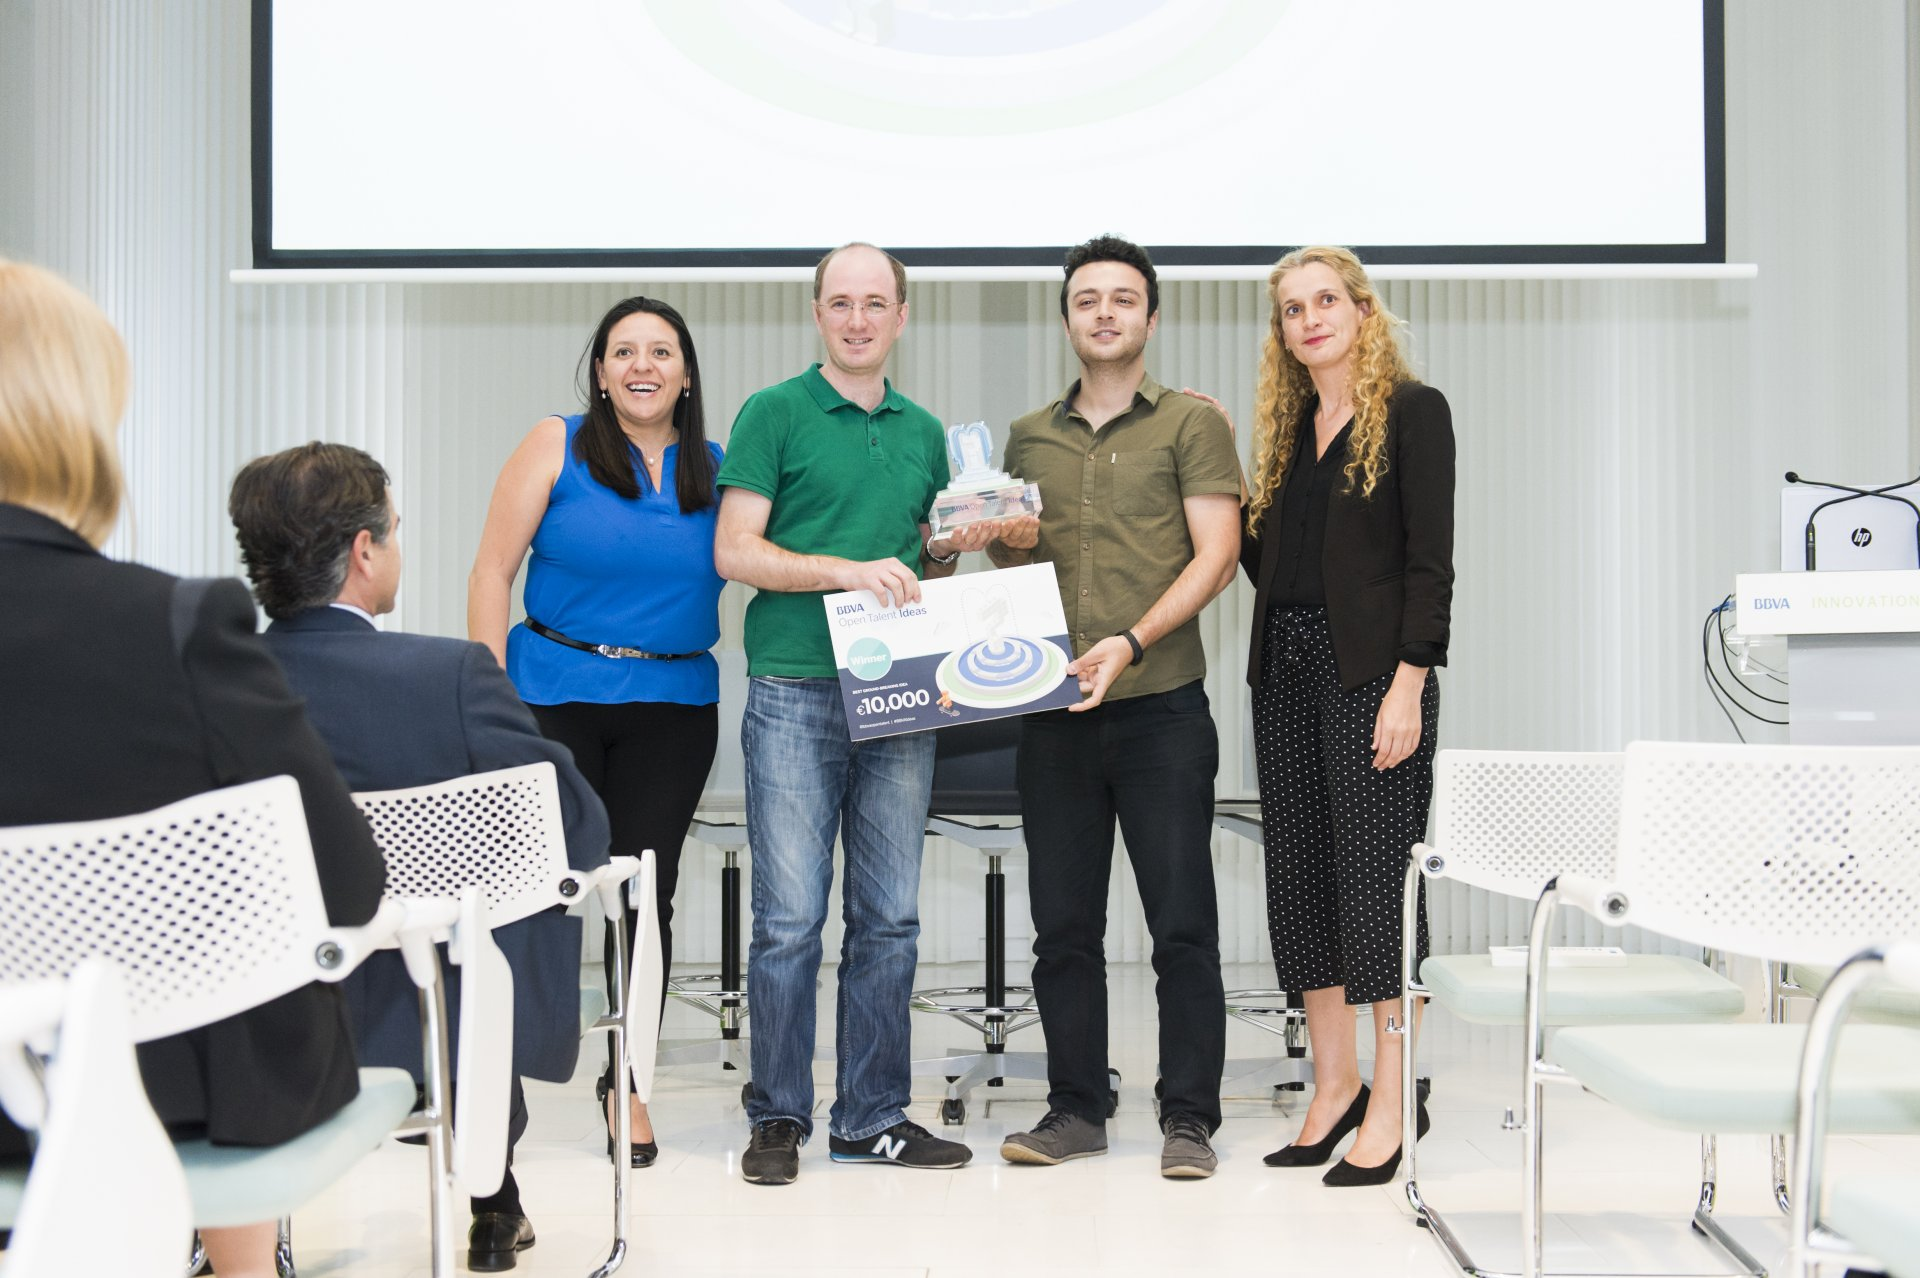 Representatives of the Garanti team receiving the award